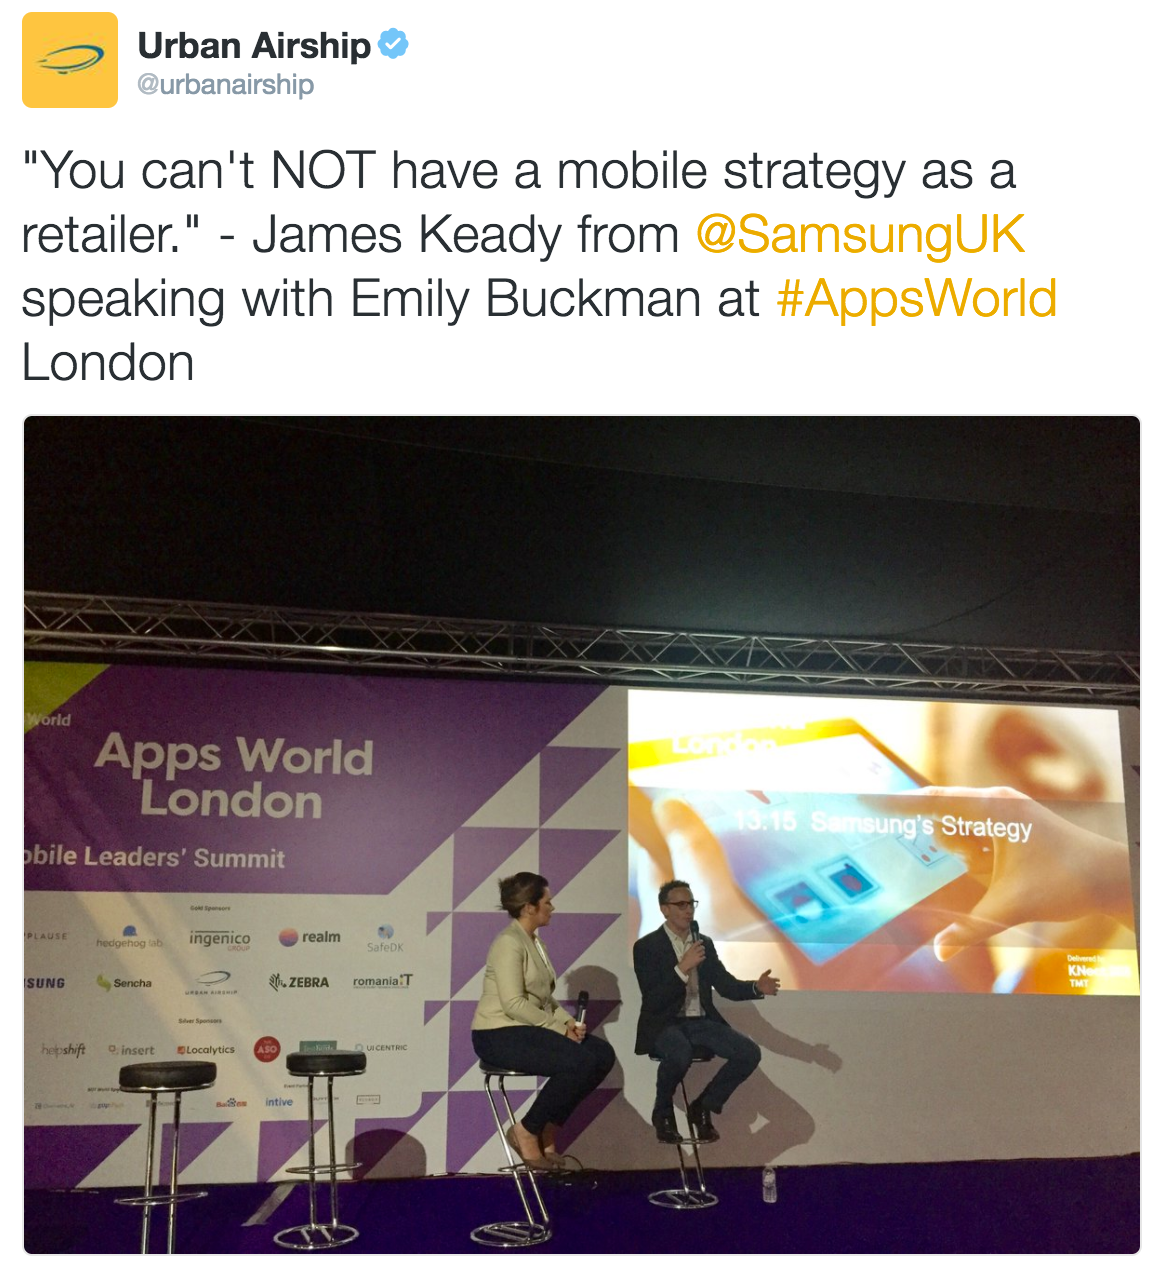 apps-world-london-samsung-james-keady-urban-airship-emily-buckaman-presenting-tweet-screenshot